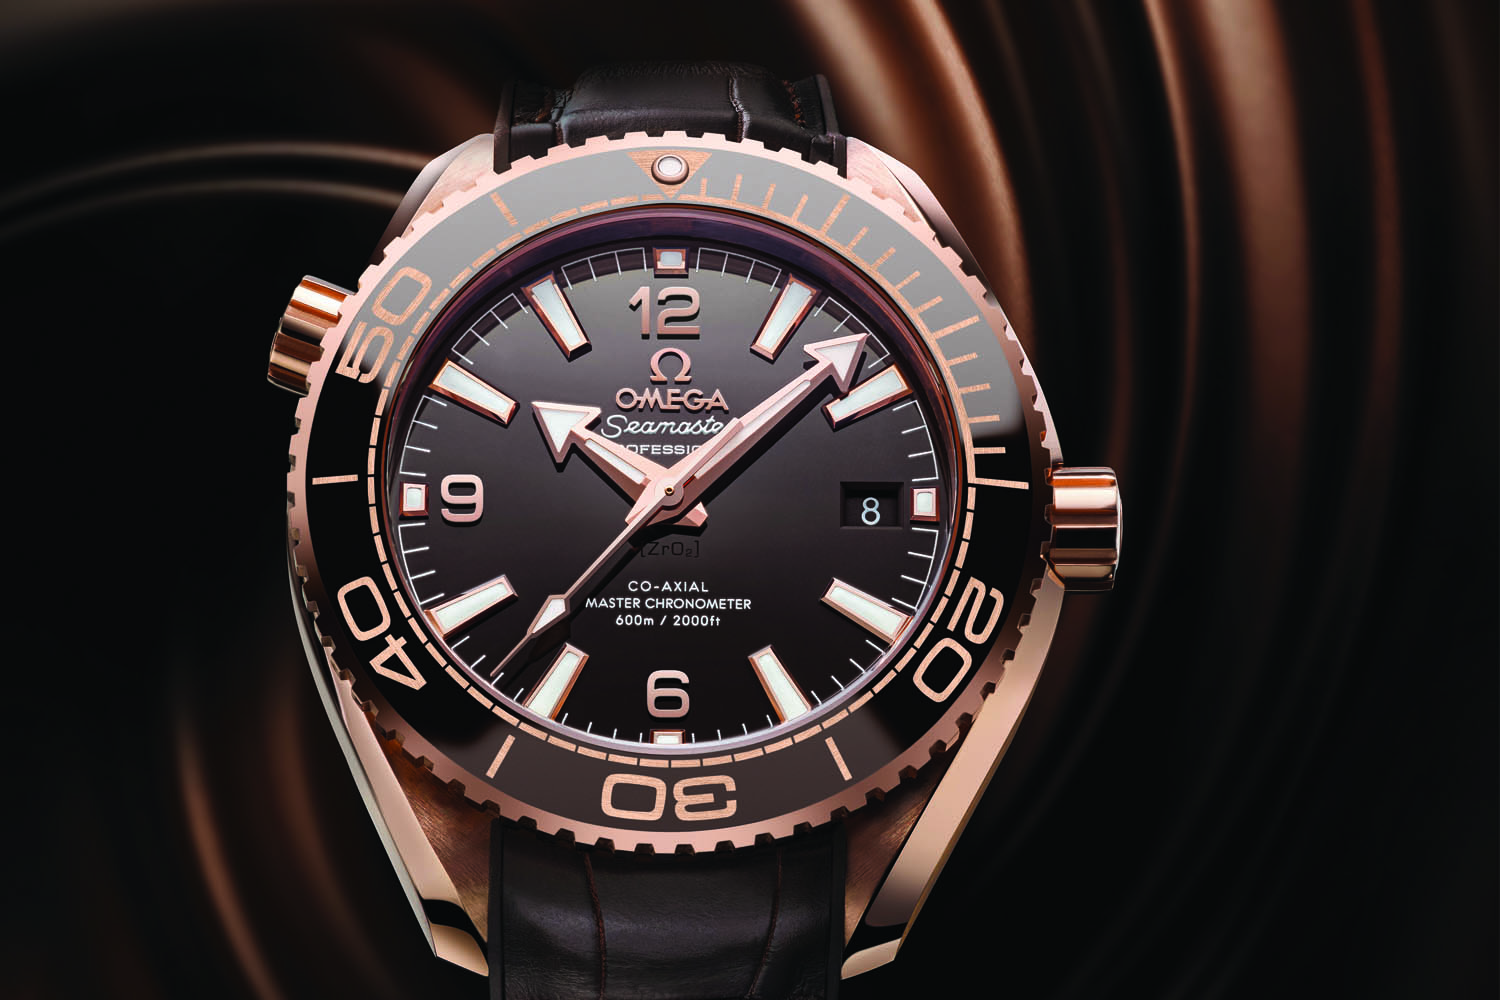 ablogtowatch difficult ocean say very watches seamaster allow always gmt well watch range omega the planet to me as review images that marketing reproduce been has timepiece in photograph